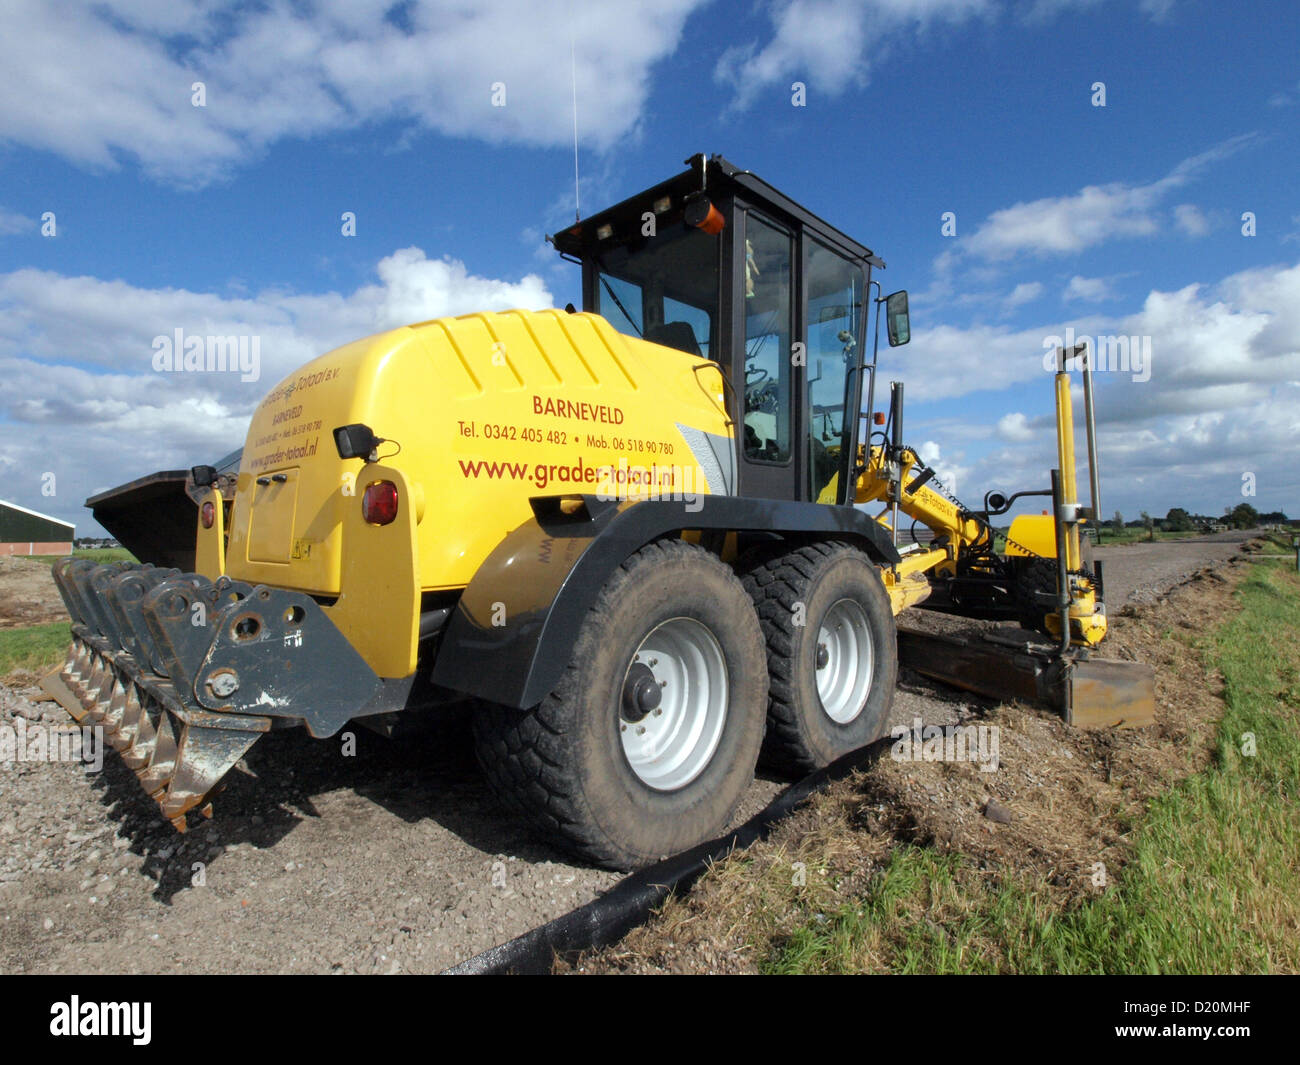 NEW HOLLAND F106.6A Grader - Stock Image